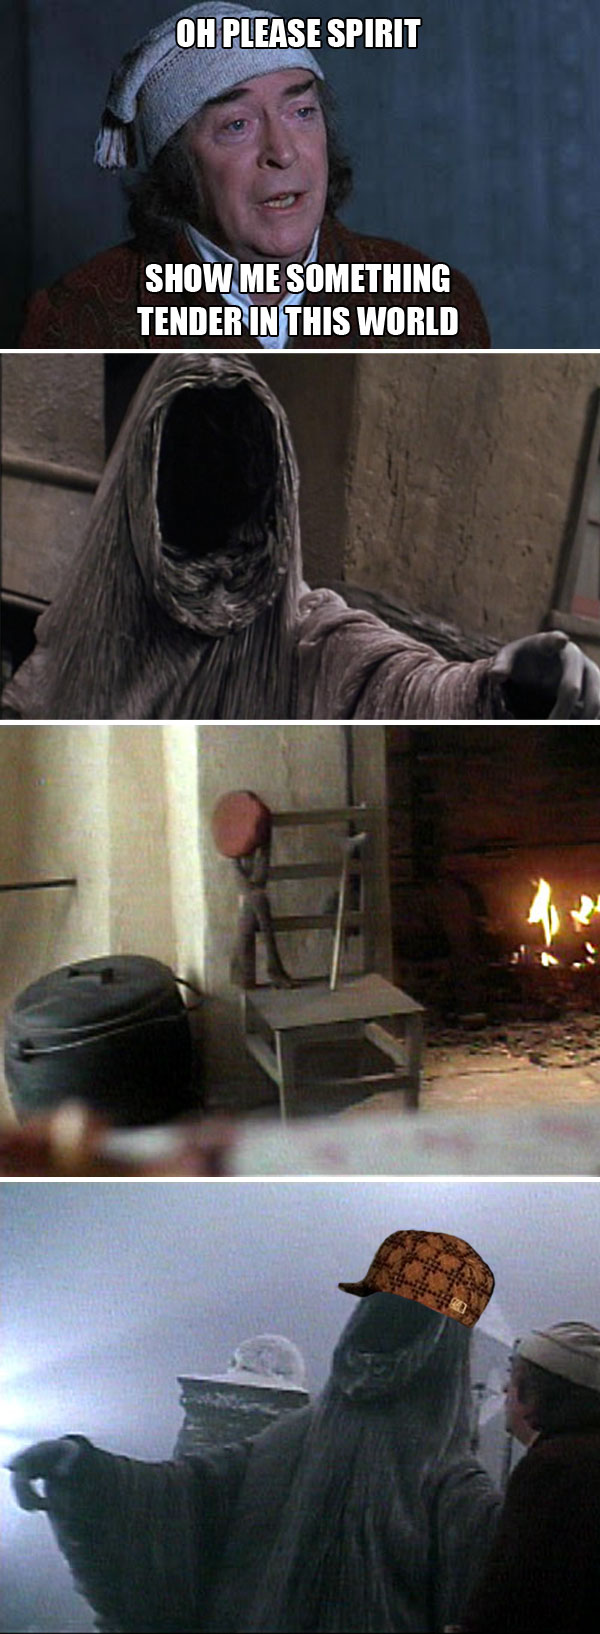 Scrooge asks the Ghost of Christmas Future to show him what he wants to see, but that troll shows him Tim Cratchitt's abandoned chair and crutch